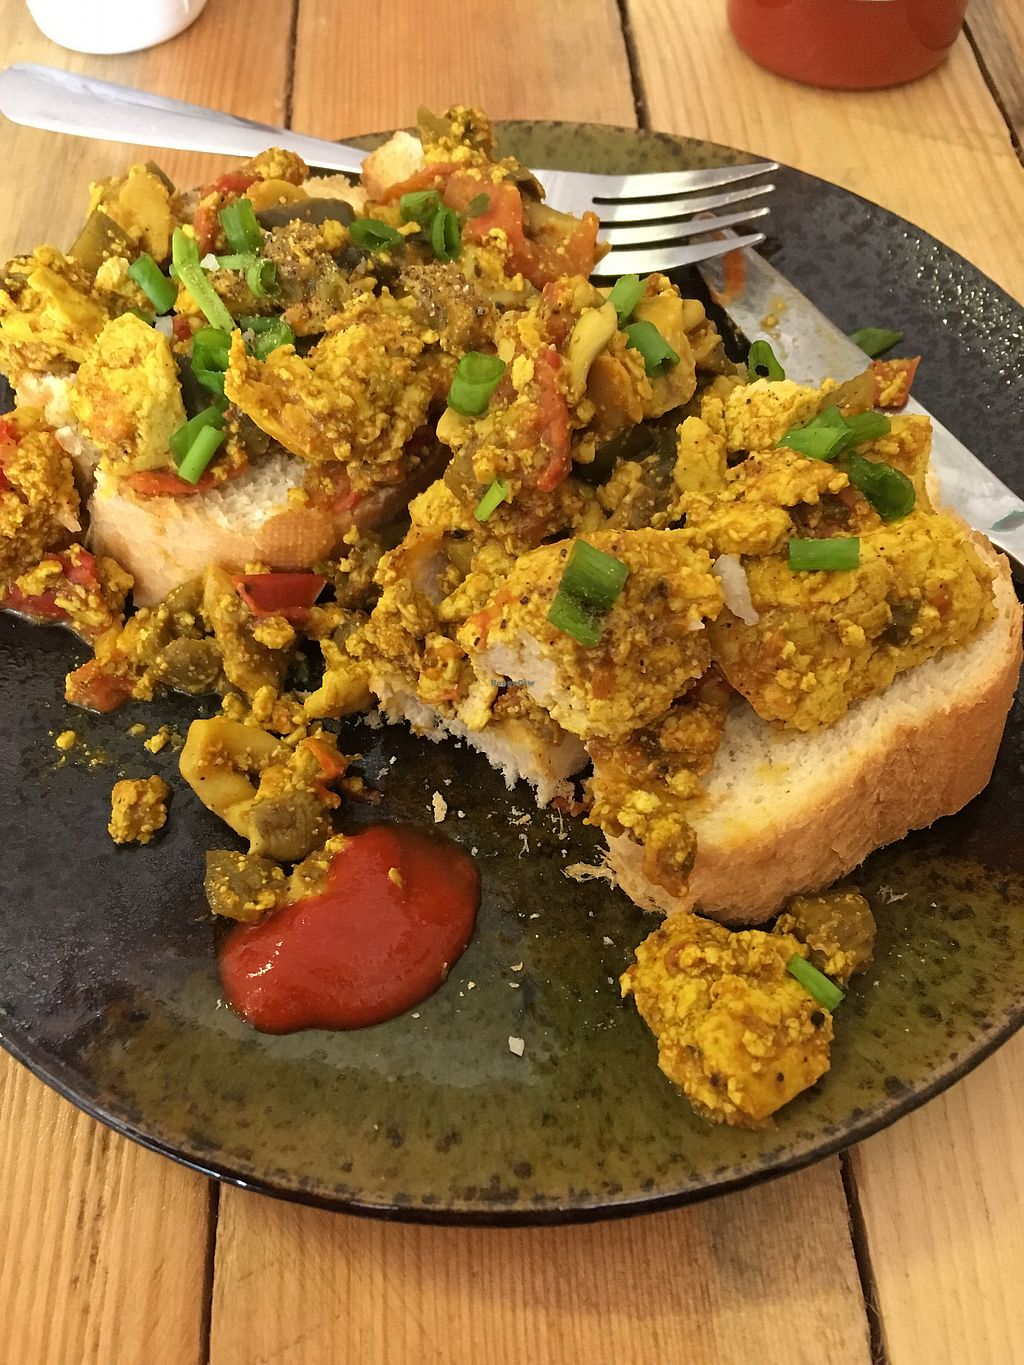 """Photo of Brew and Breakfast  by <a href=""""/members/profile/JuergenKracke"""">JuergenKracke</a> <br/>scrambled tofu on toast  <br/> February 5, 2018  - <a href='/contact/abuse/image/104422/355138'>Report</a>"""